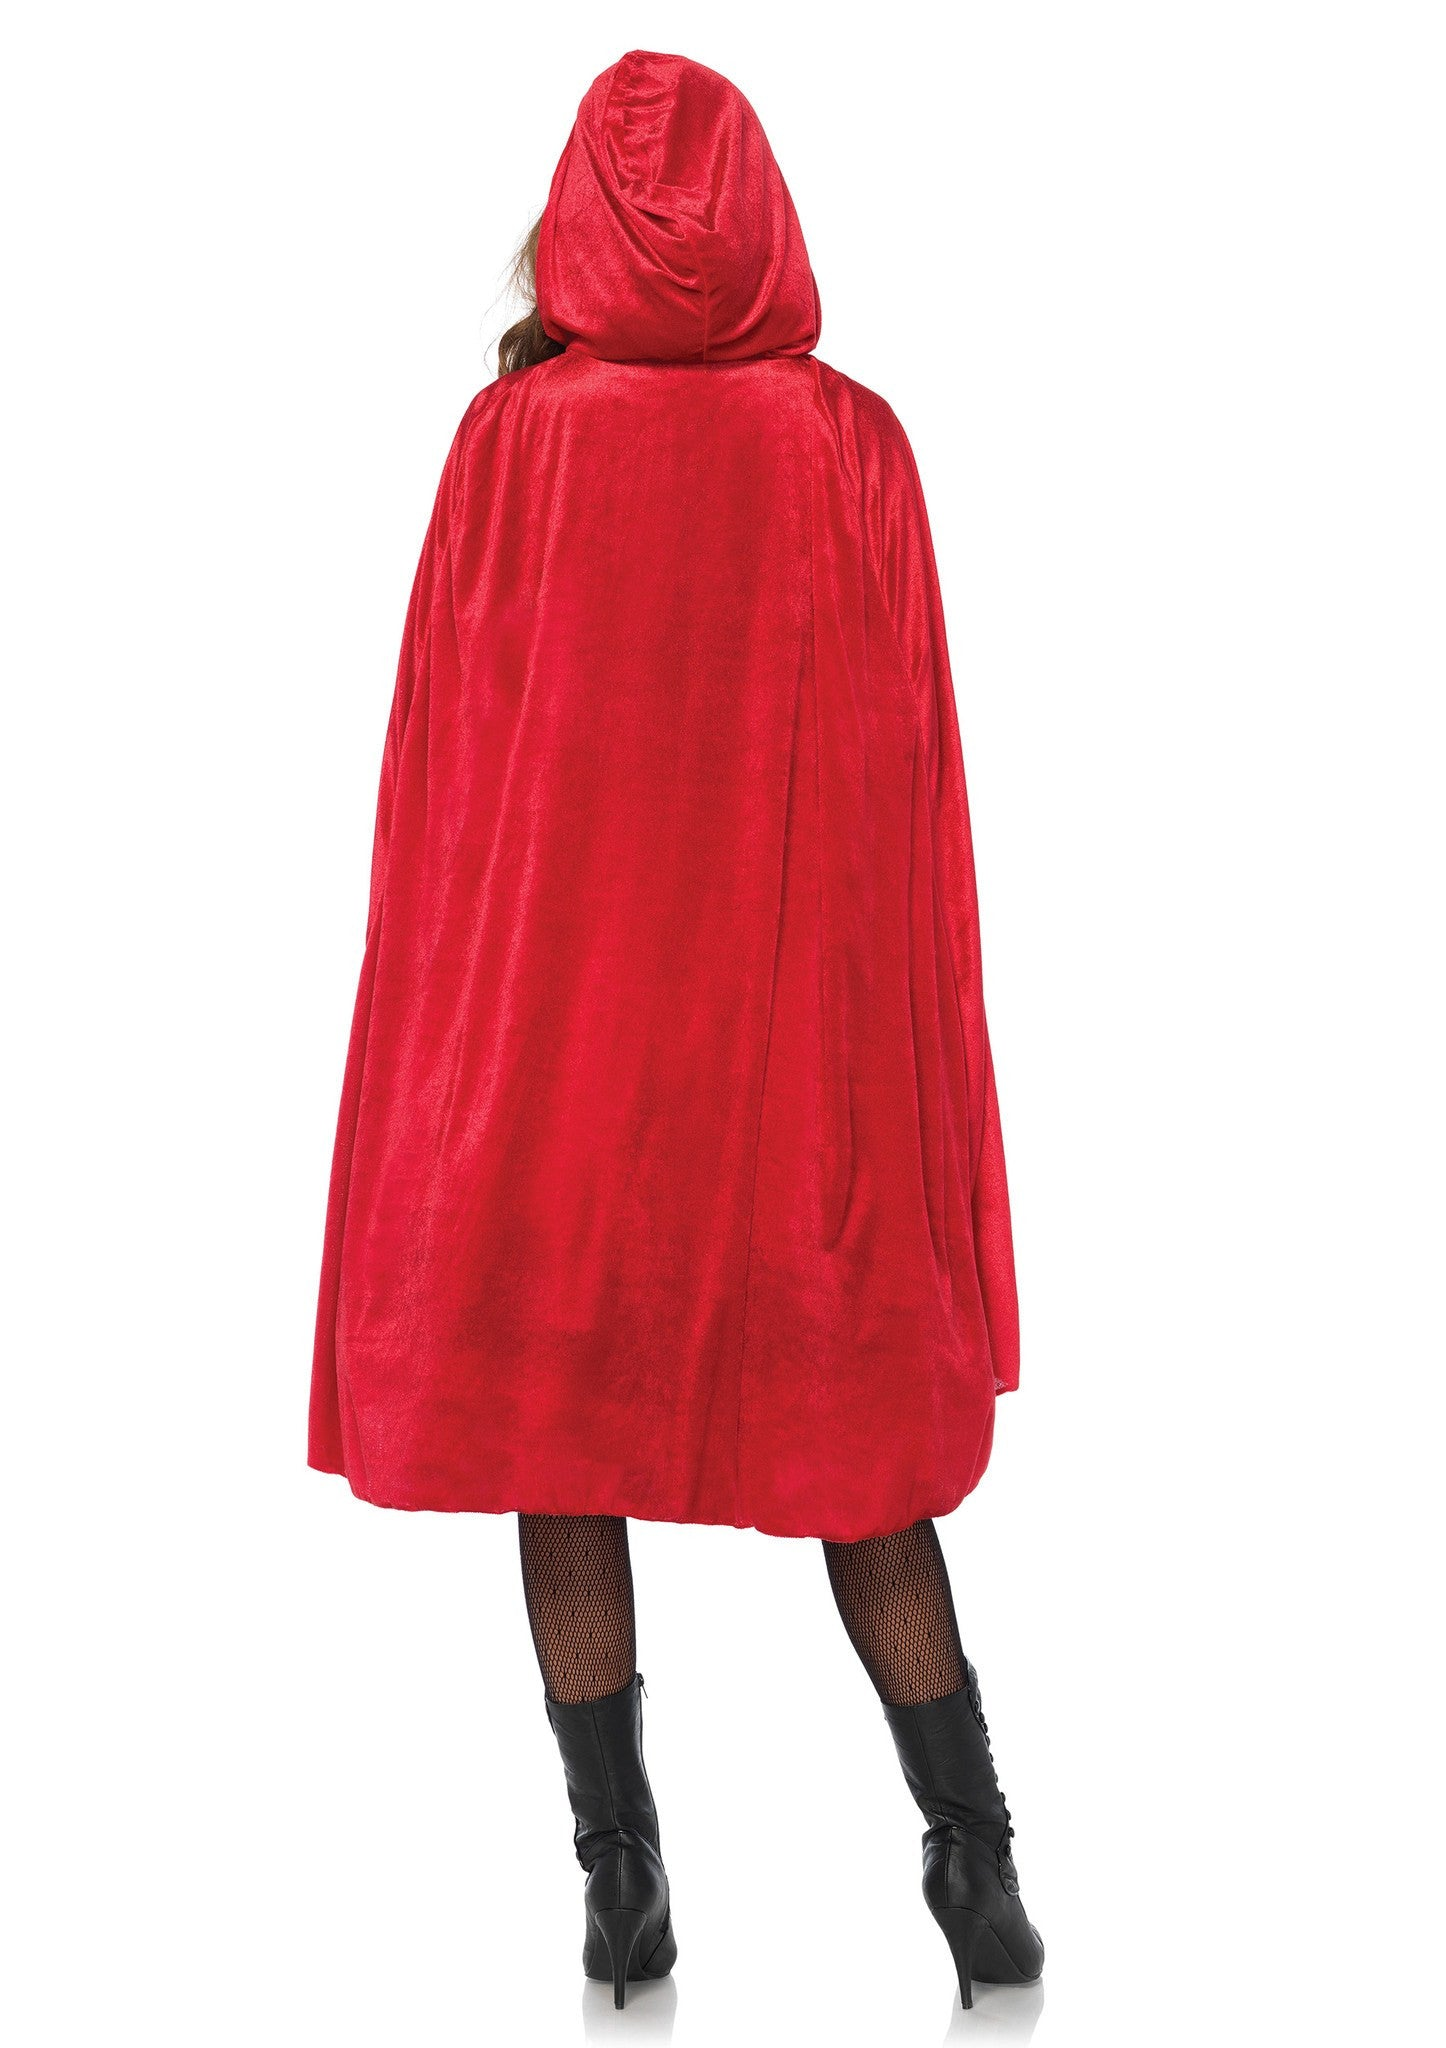 little red riding hood revisited by Every day she wore a red hood over her head, so people called her little red  riding hood little red riding hood's grandmother lived on the other side of the .